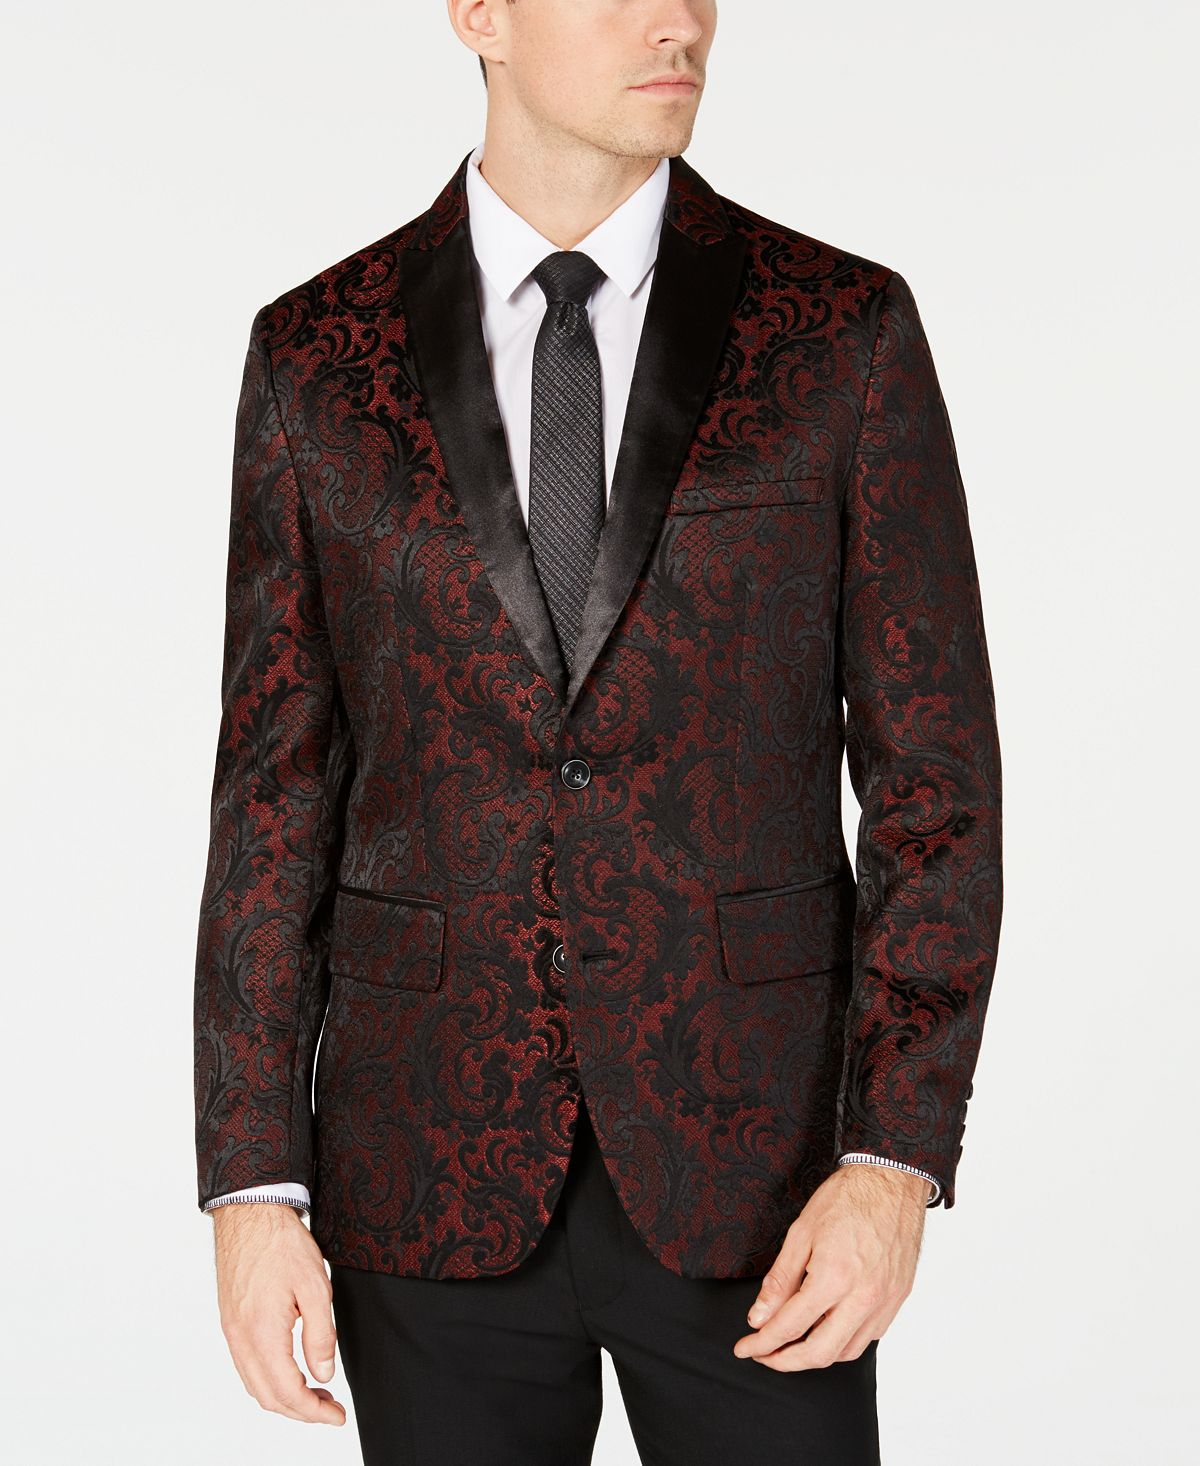 Inc International Concepts Inc Slim-fit Jacquard Blazer Red Combo